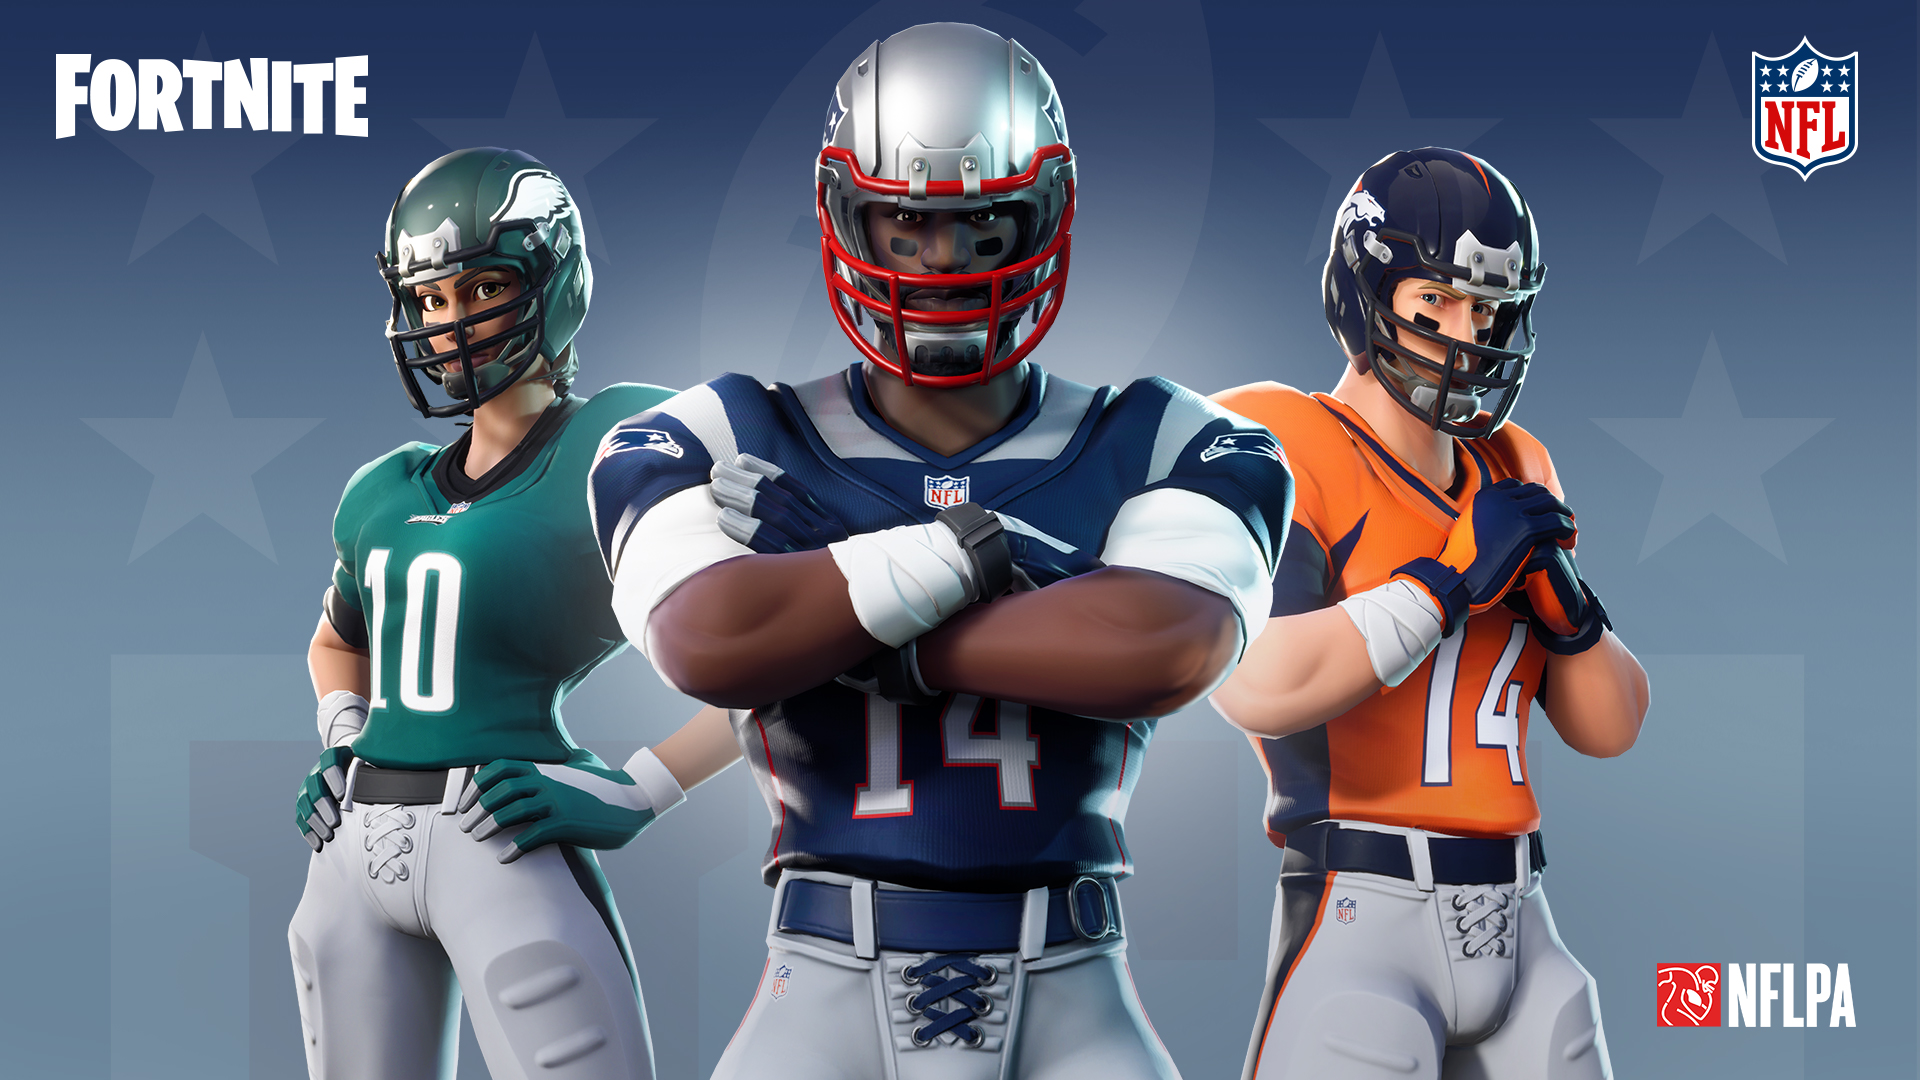 """Epic Games has partnered with the NFL to let Fortnite players buy """"skins"""" featuring uniform jerseys of their favorite football teams."""